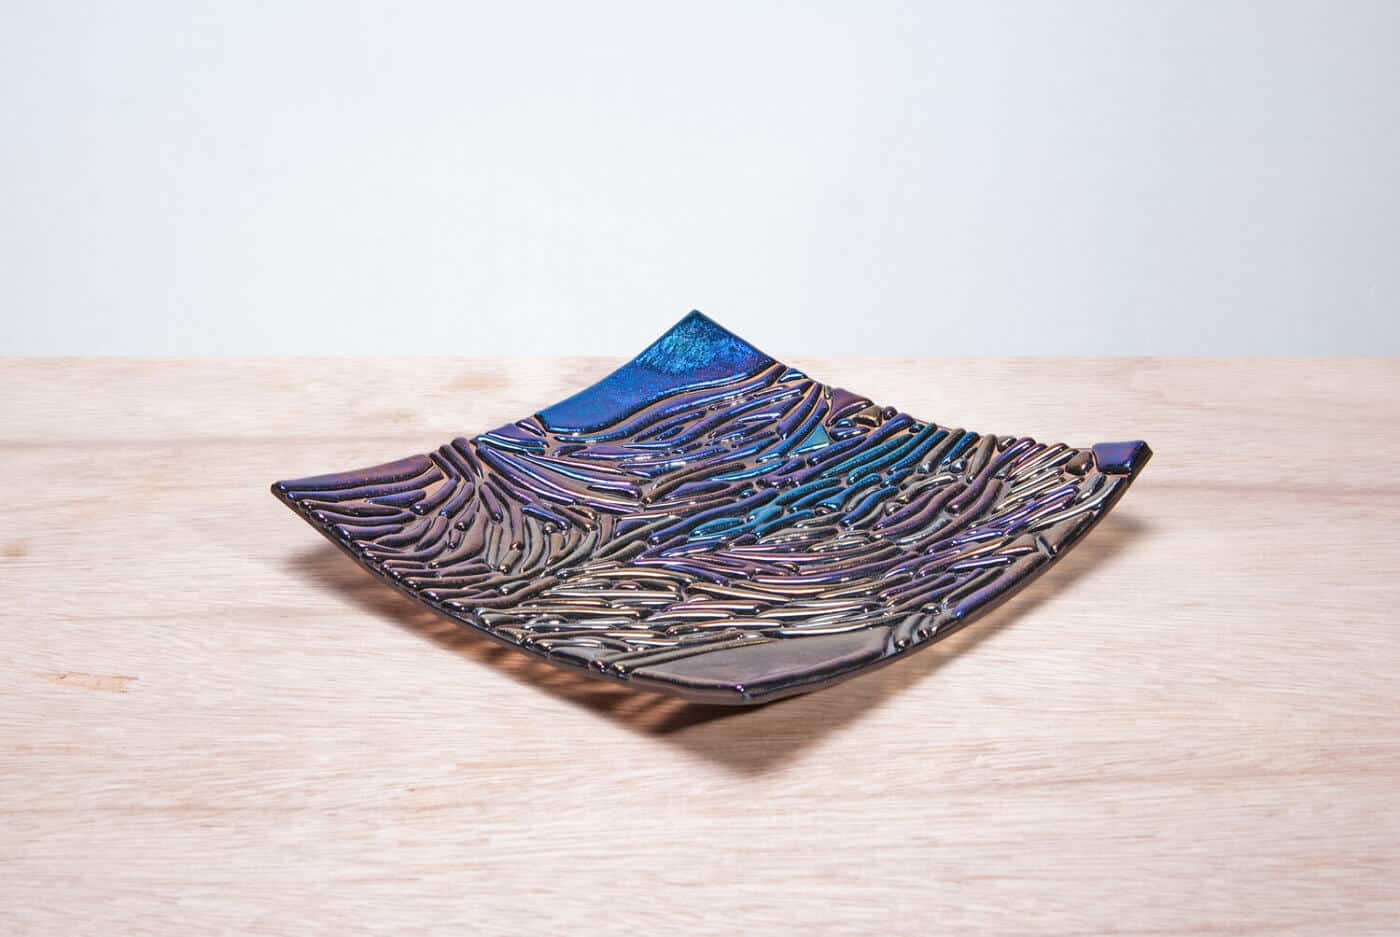 Dichroic glass art product photography